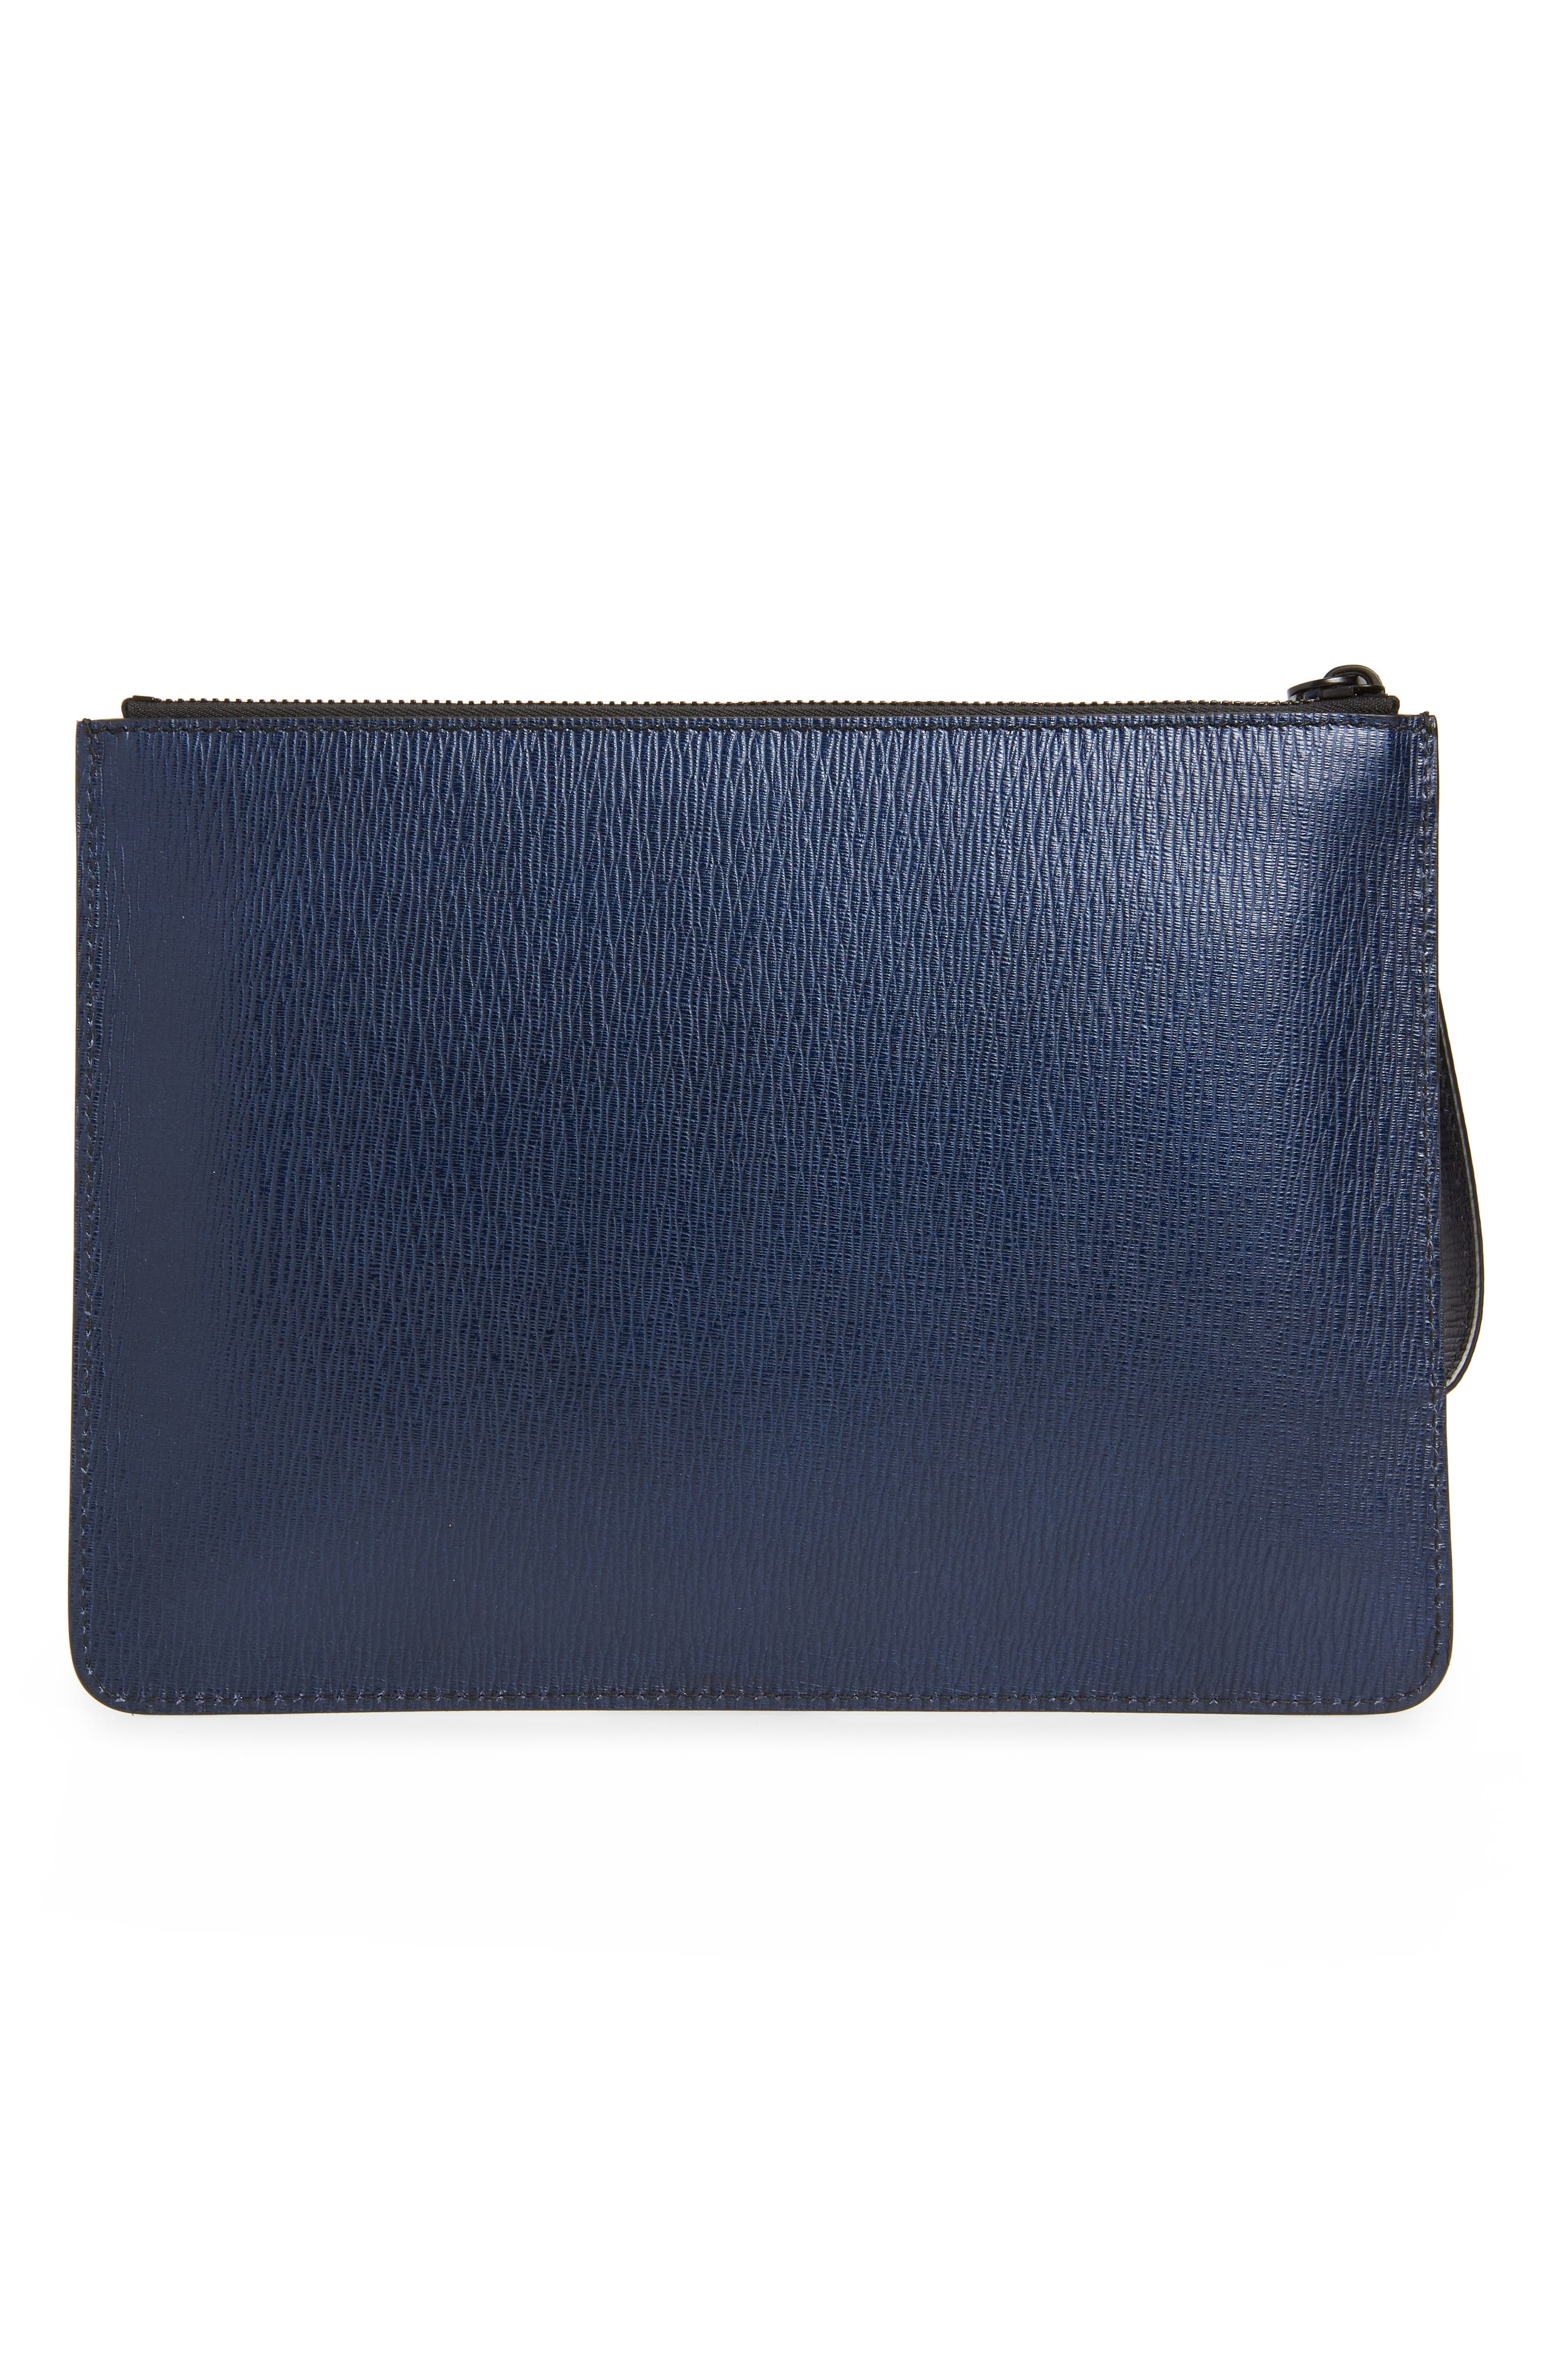 Textured Leather Zip Pouch,                             Alternate thumbnail 2, color,                             NAVY